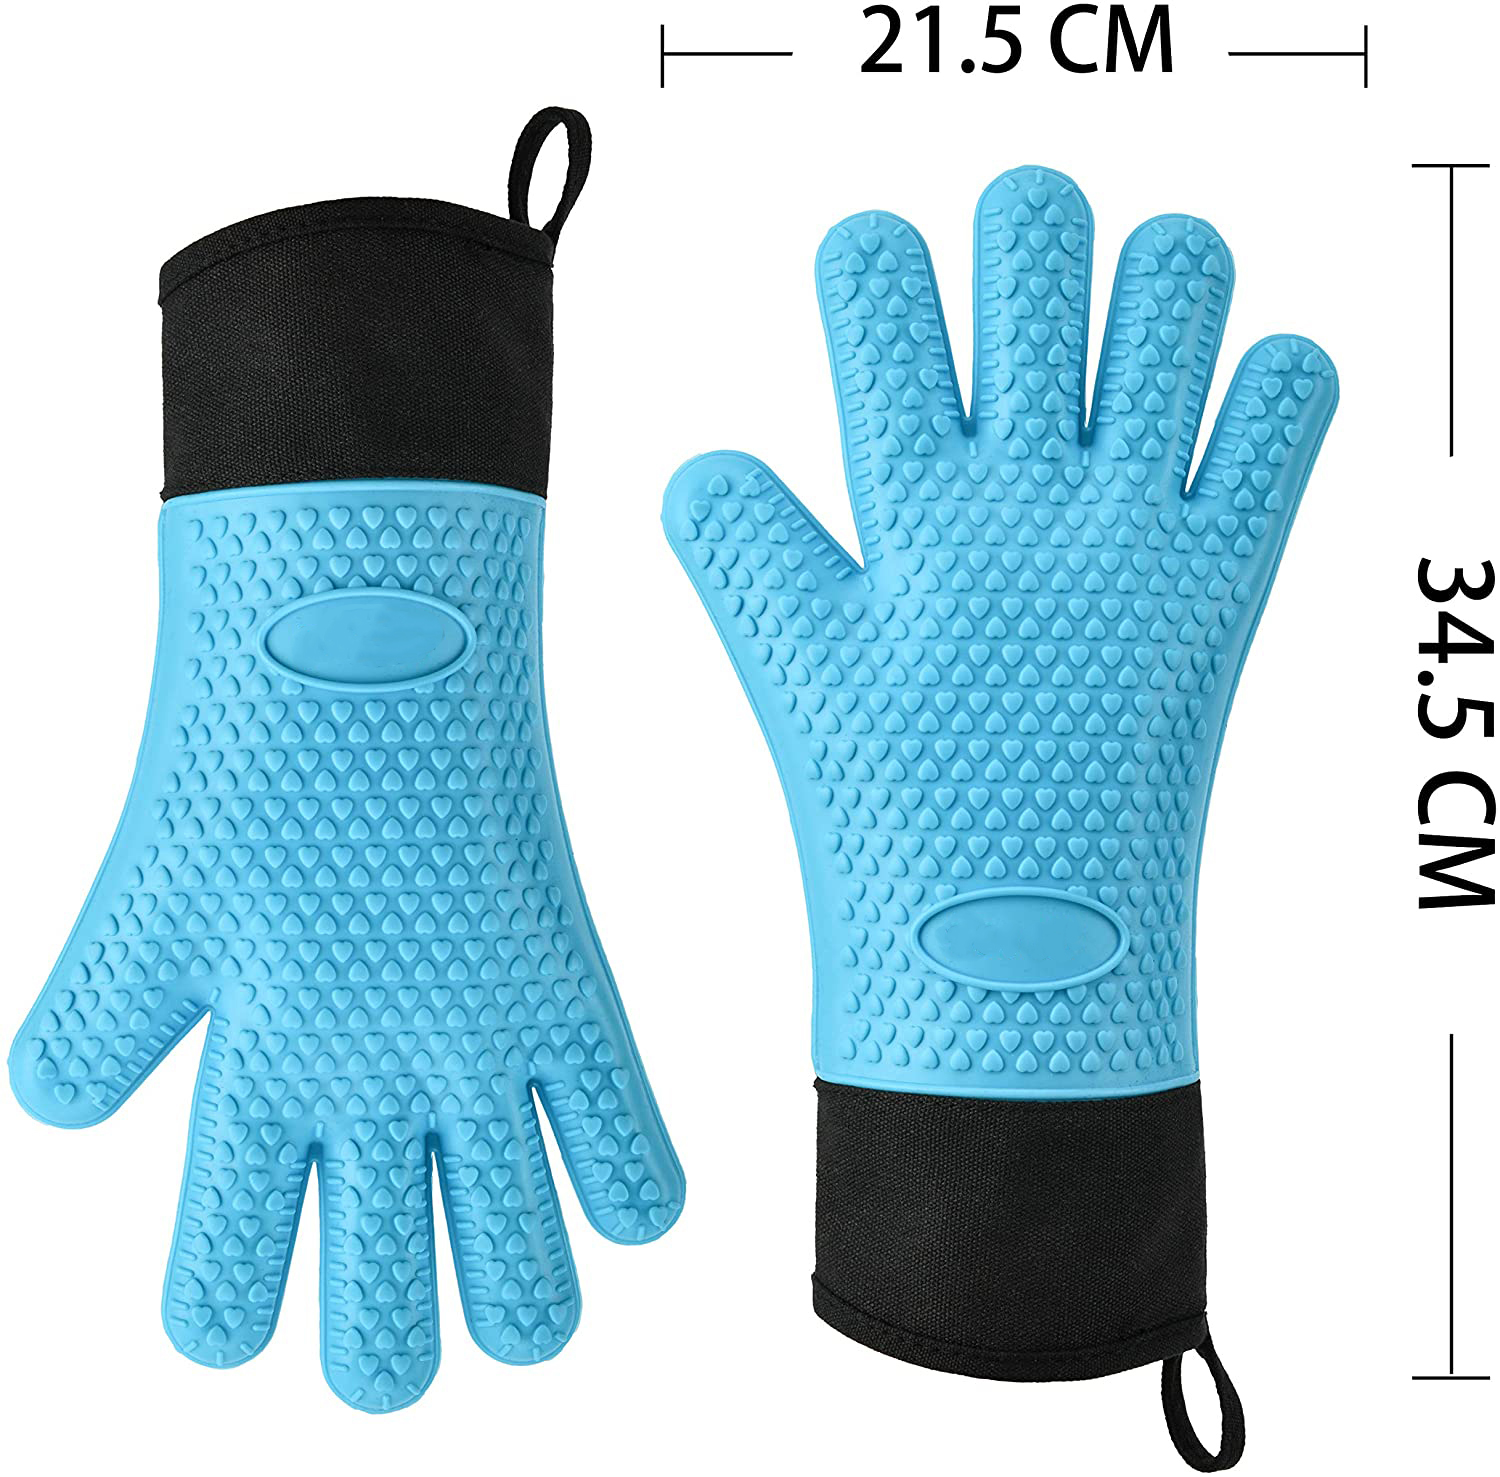 New Pair of Gloves Heat Resistant Silicone Gloves Kitchen BBQ Oven Cooking Mitt